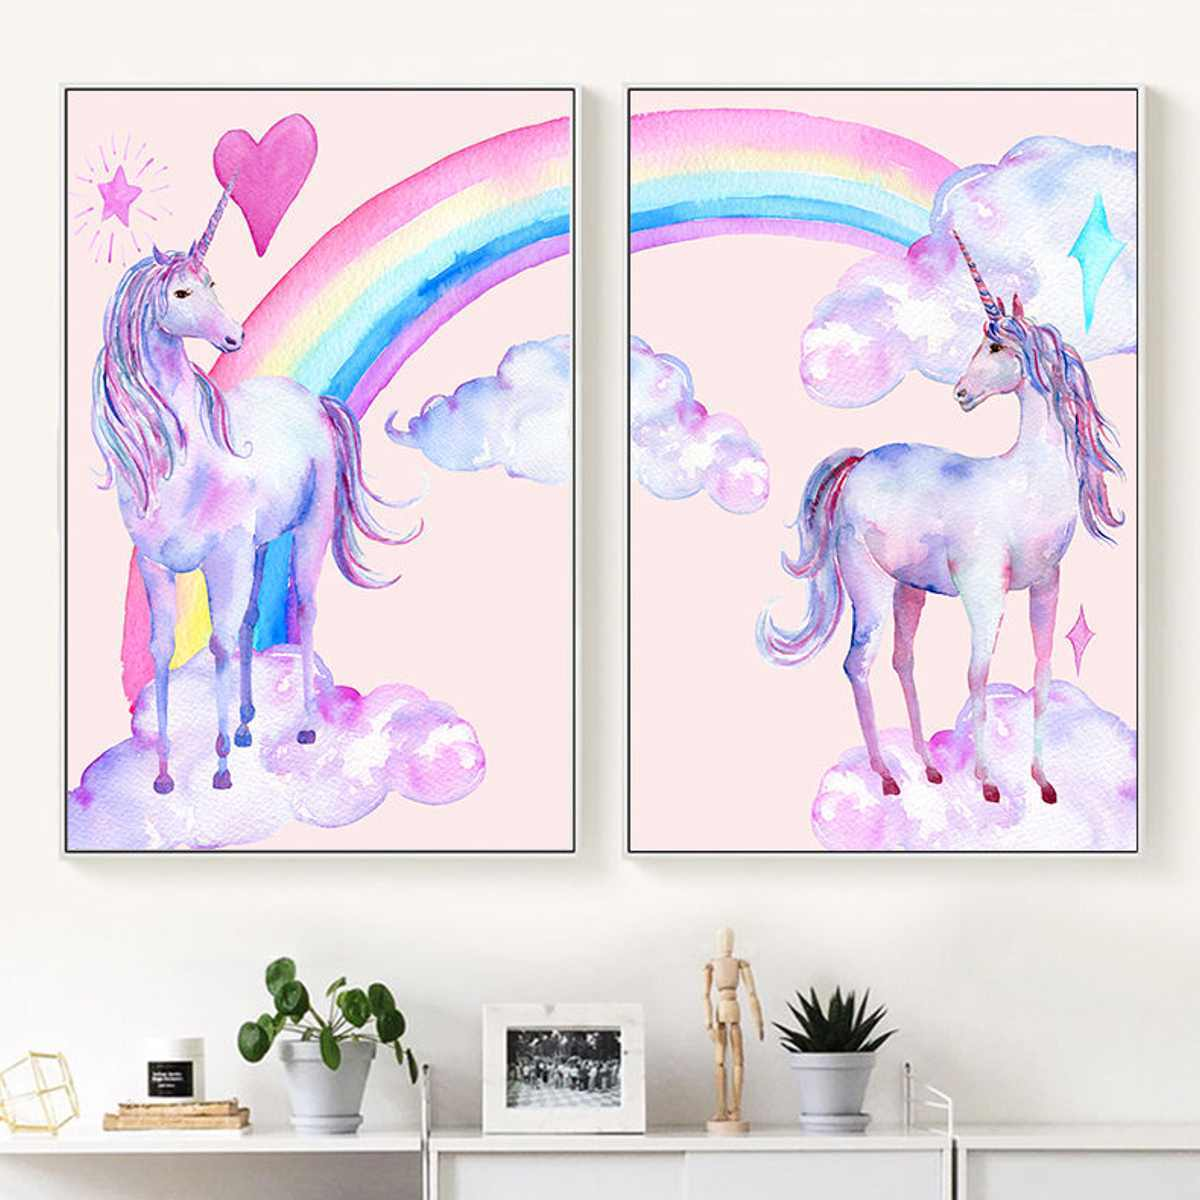 20x25cm Nordic Style Canvas Oil Painting Rainbow Cartoon Unicorns Pink Horse Wall Mount Hanging Poster Home Room Decor Picture